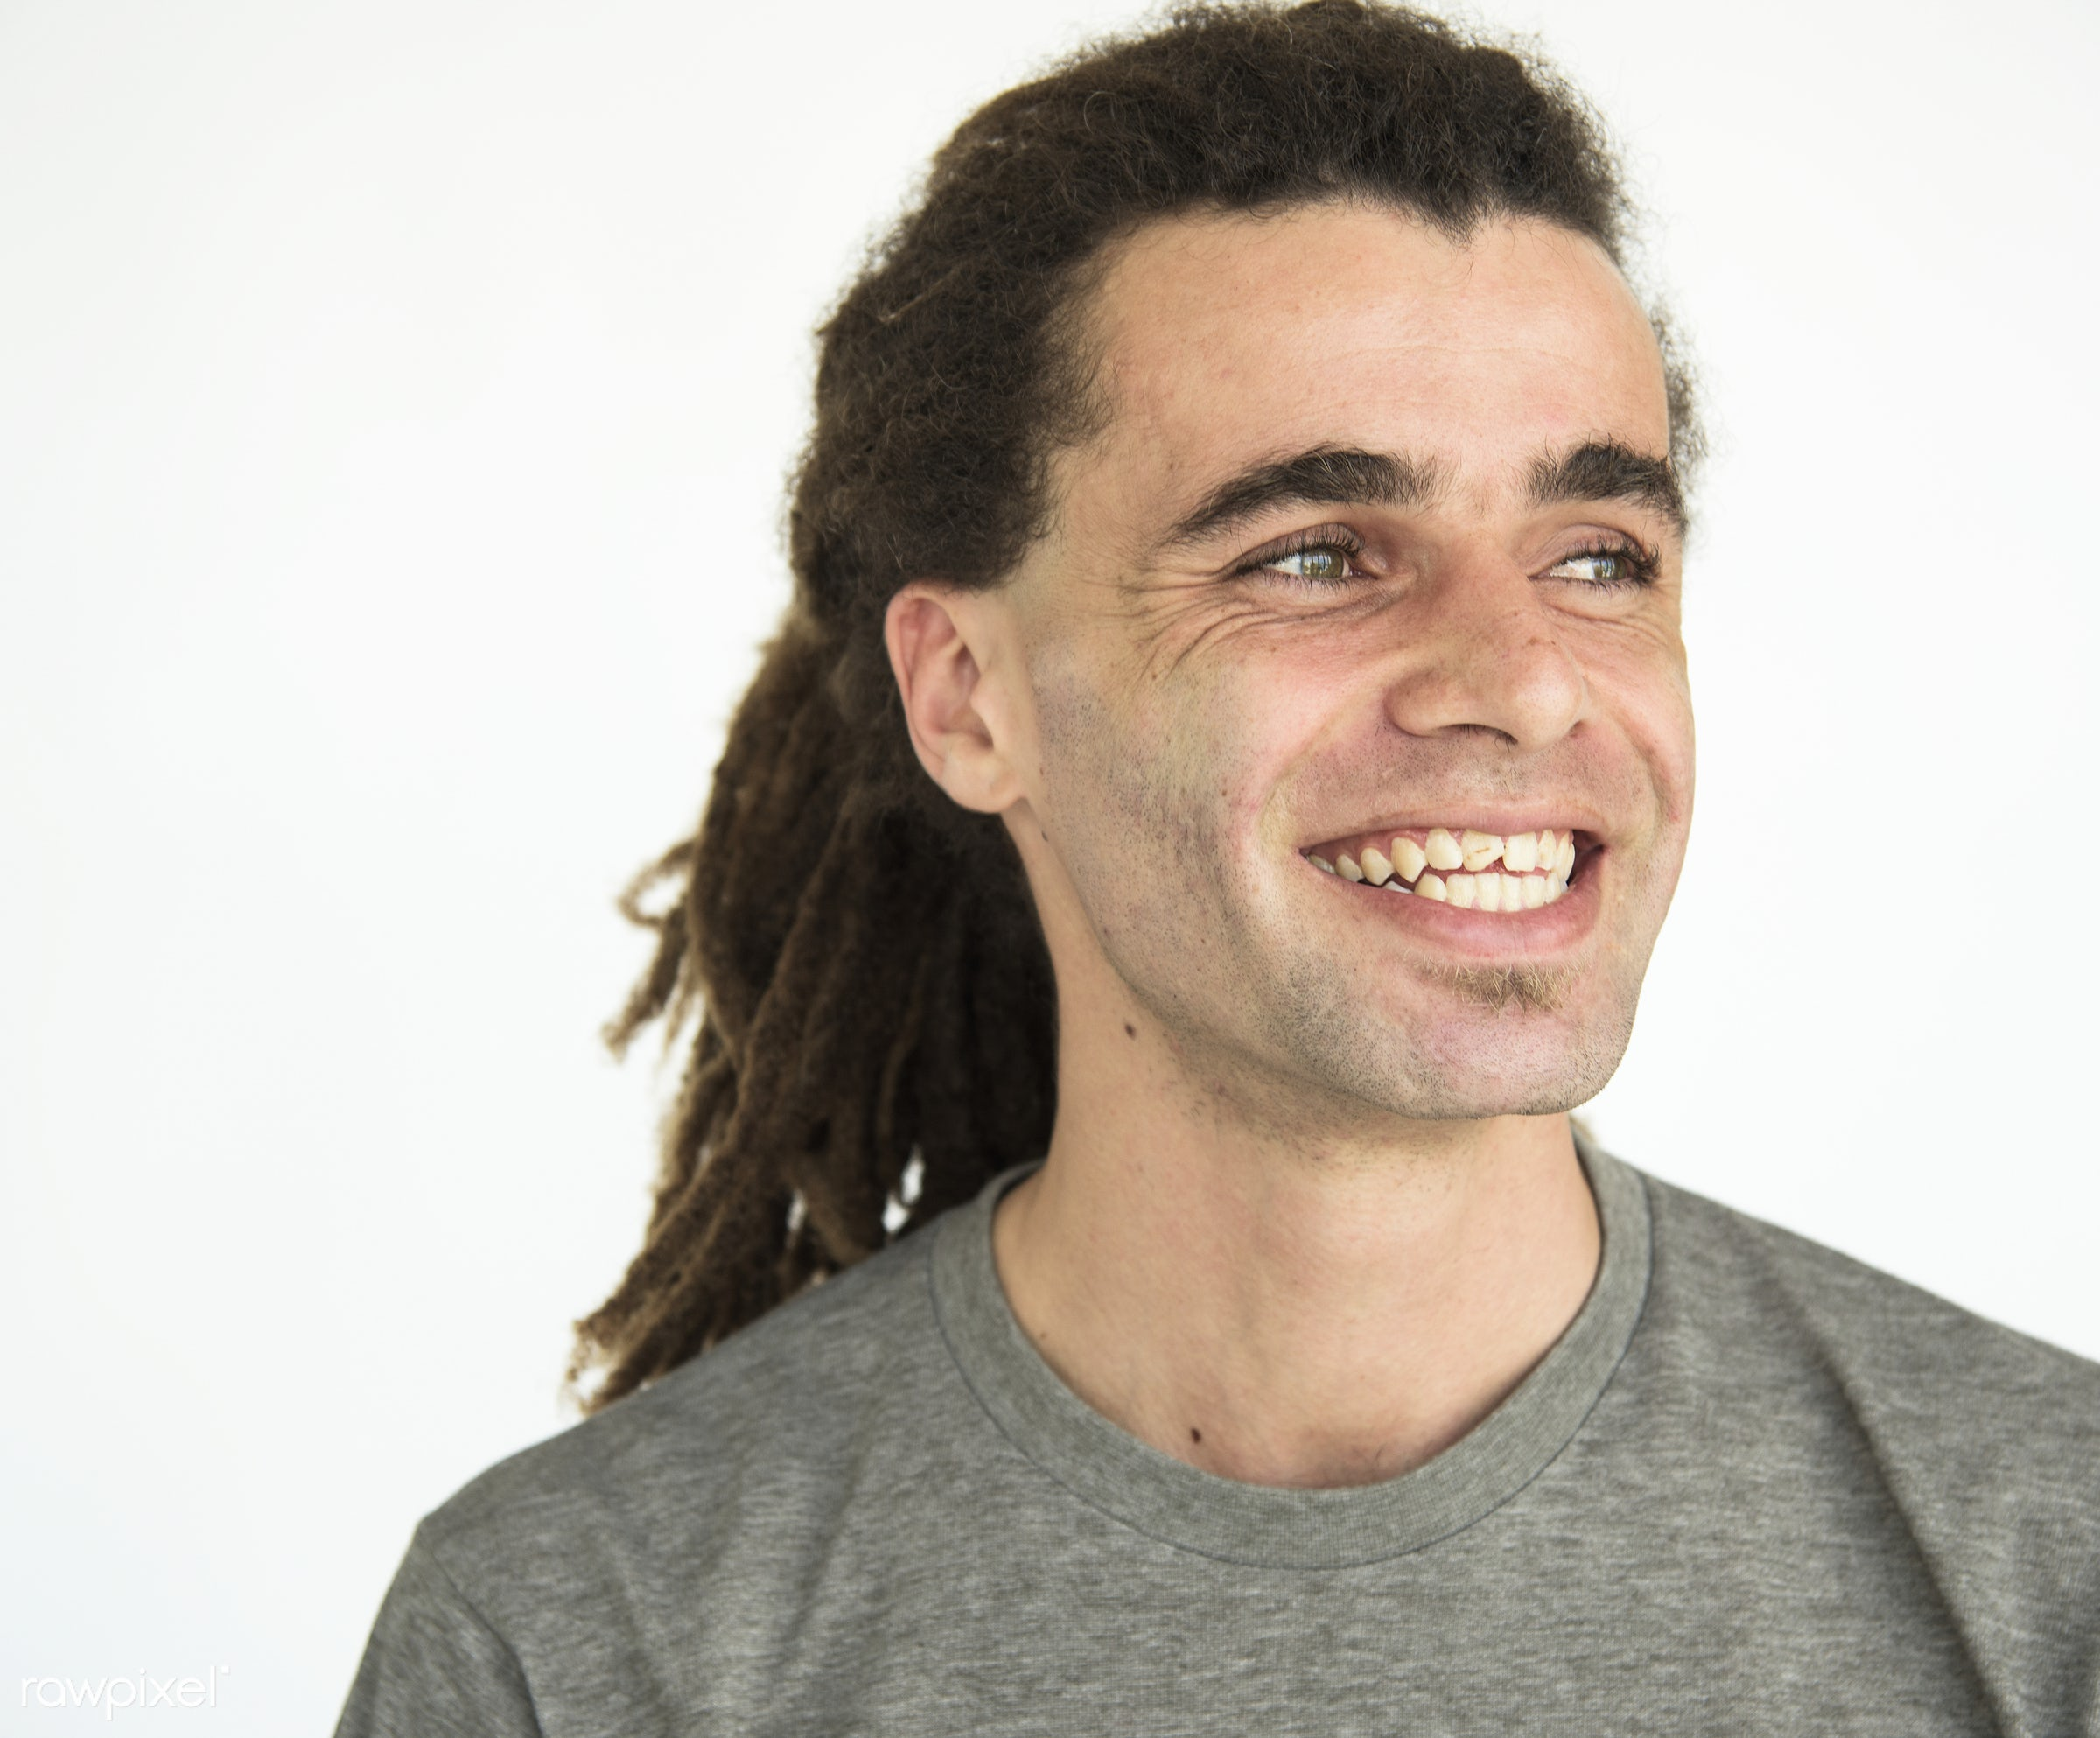 Guy with dreadlocks smiling positive portrait - adult, alone, background, blank, casual, cheerful, dreadlocks, expression,...